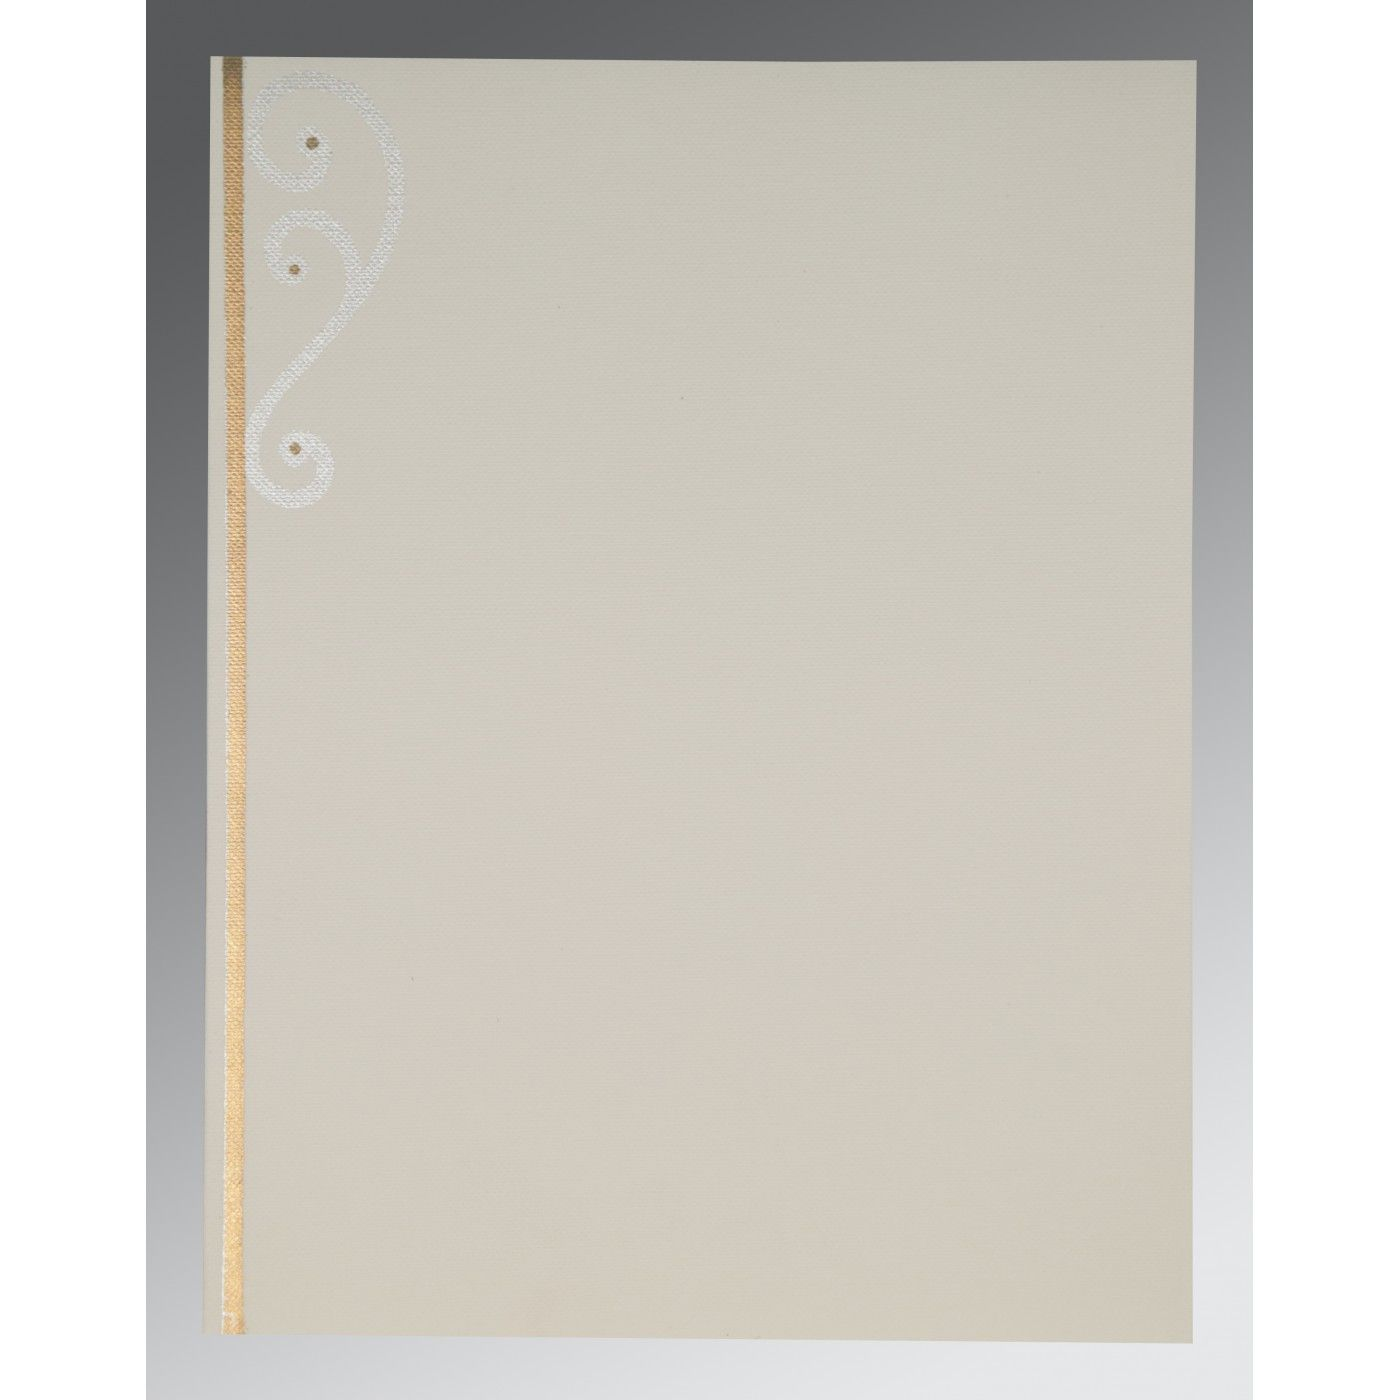 OFF-WHITE MATTE EMBOSSED WEDDING INVITATION : CW-2116 - IndianWeddingCards